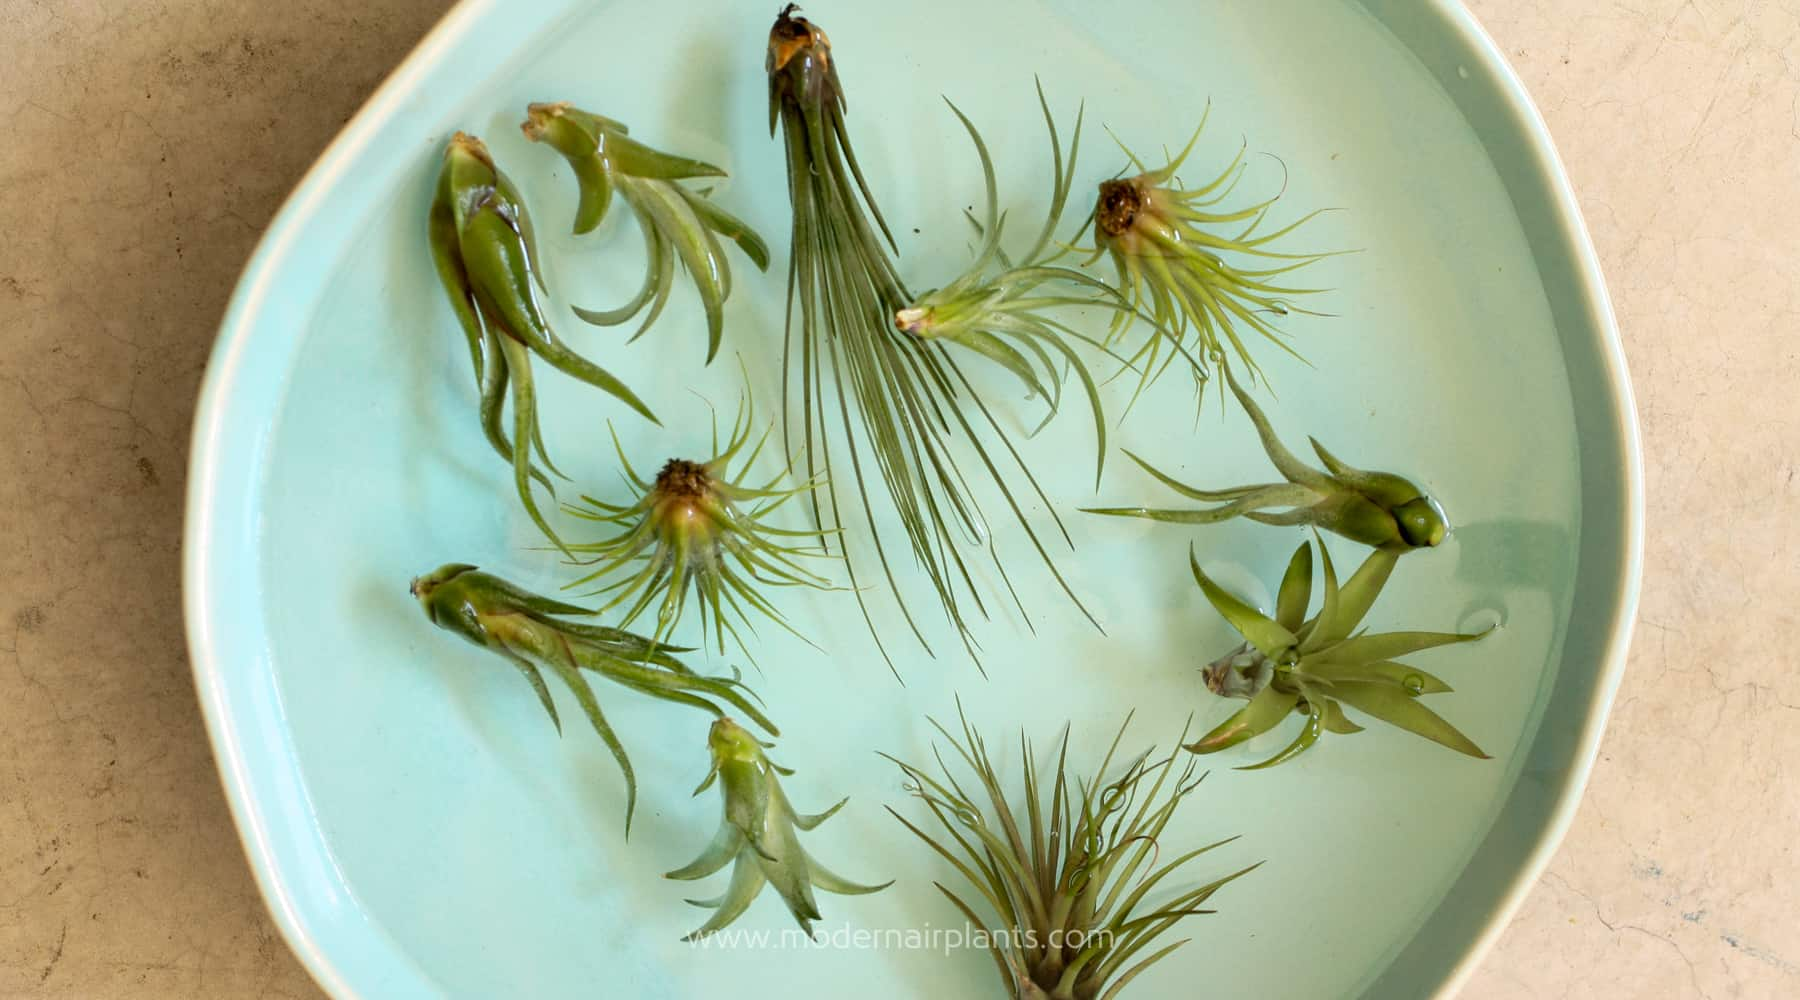 WATERING AIR PLANTS